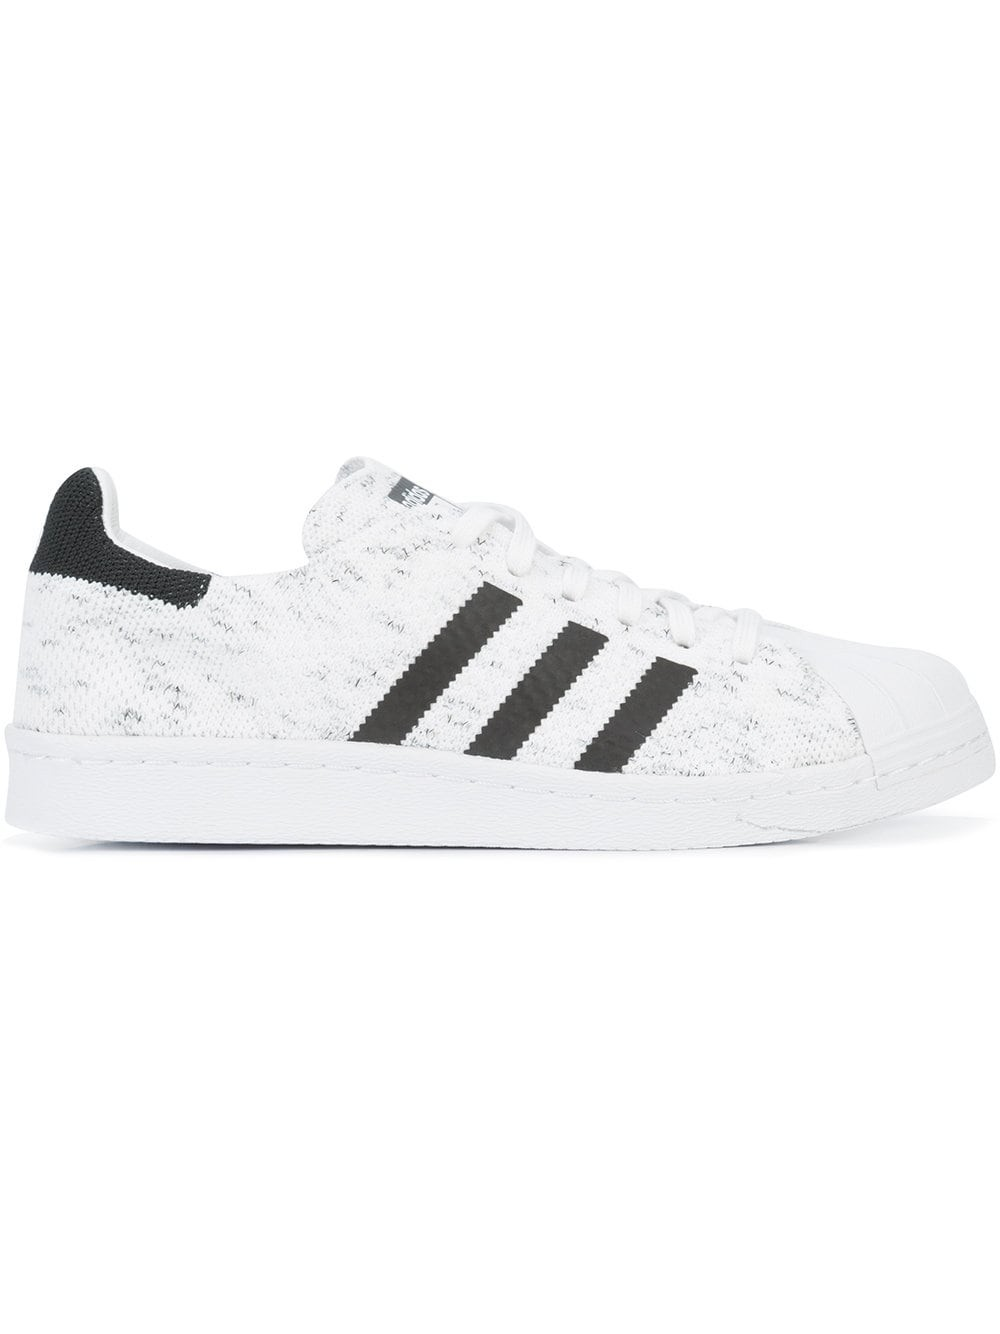 Adidas Originals Superstar 80s PK Femme - BY2127